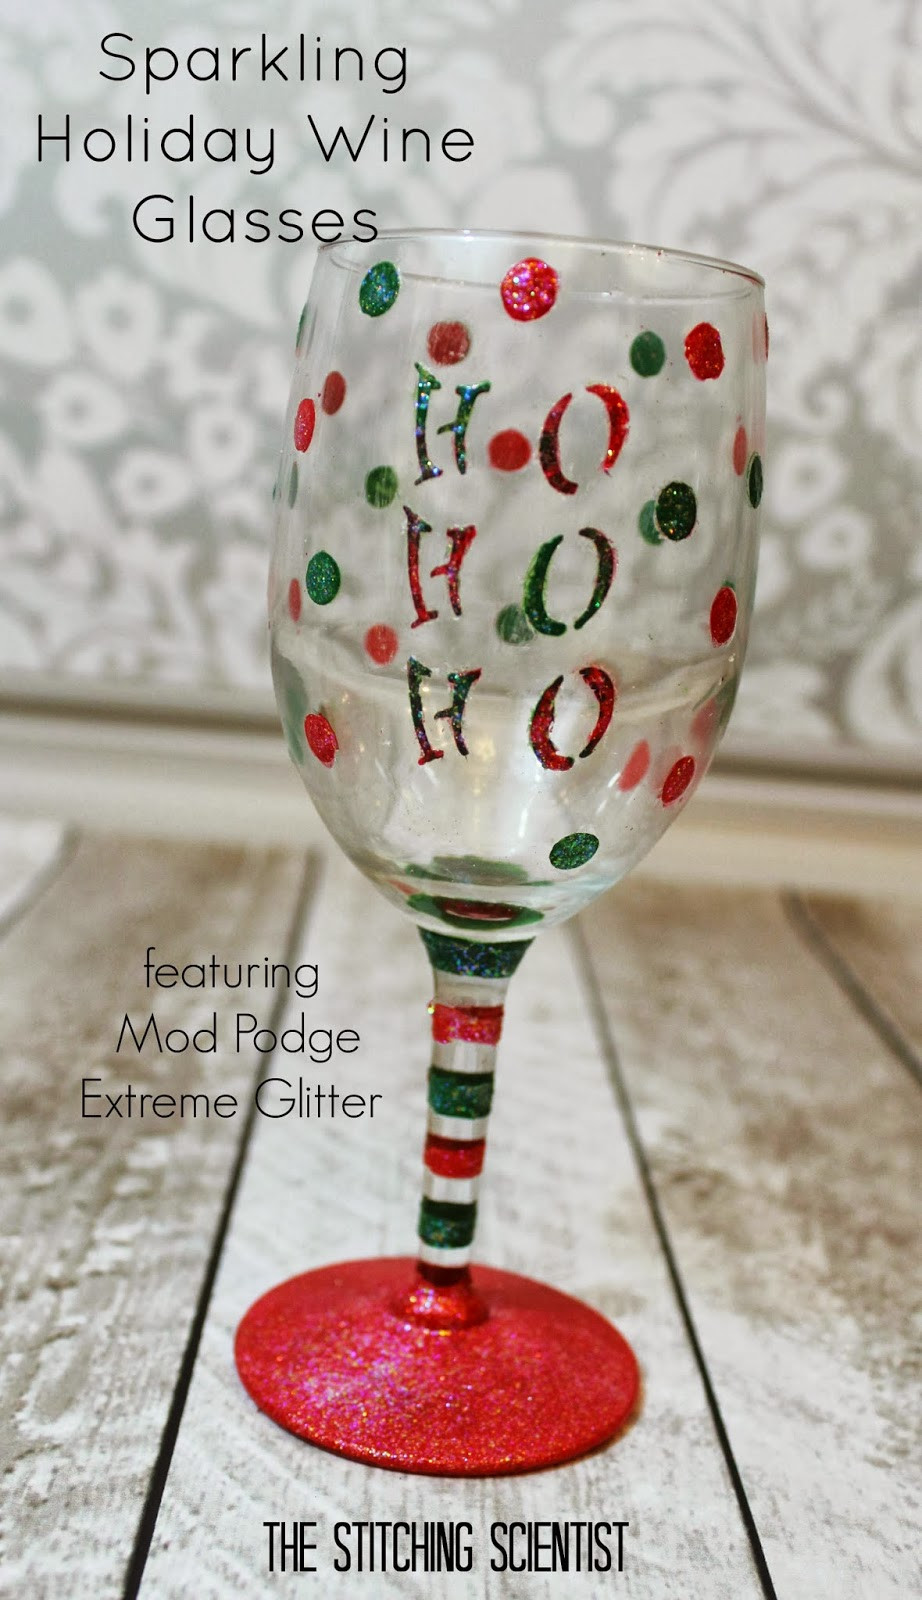 Best ideas about DIY Christmas Wine Glasses . Save or Pin DIY Sparkling Holiday Wine Glasses Now.